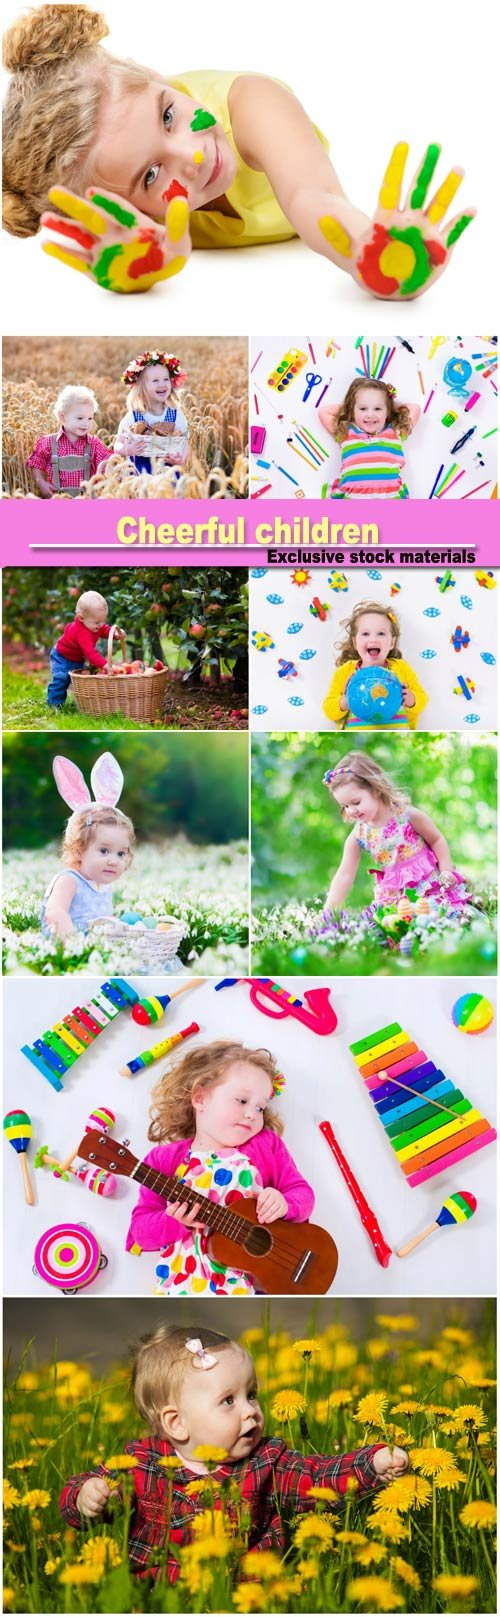 Cheerful children, children in nature